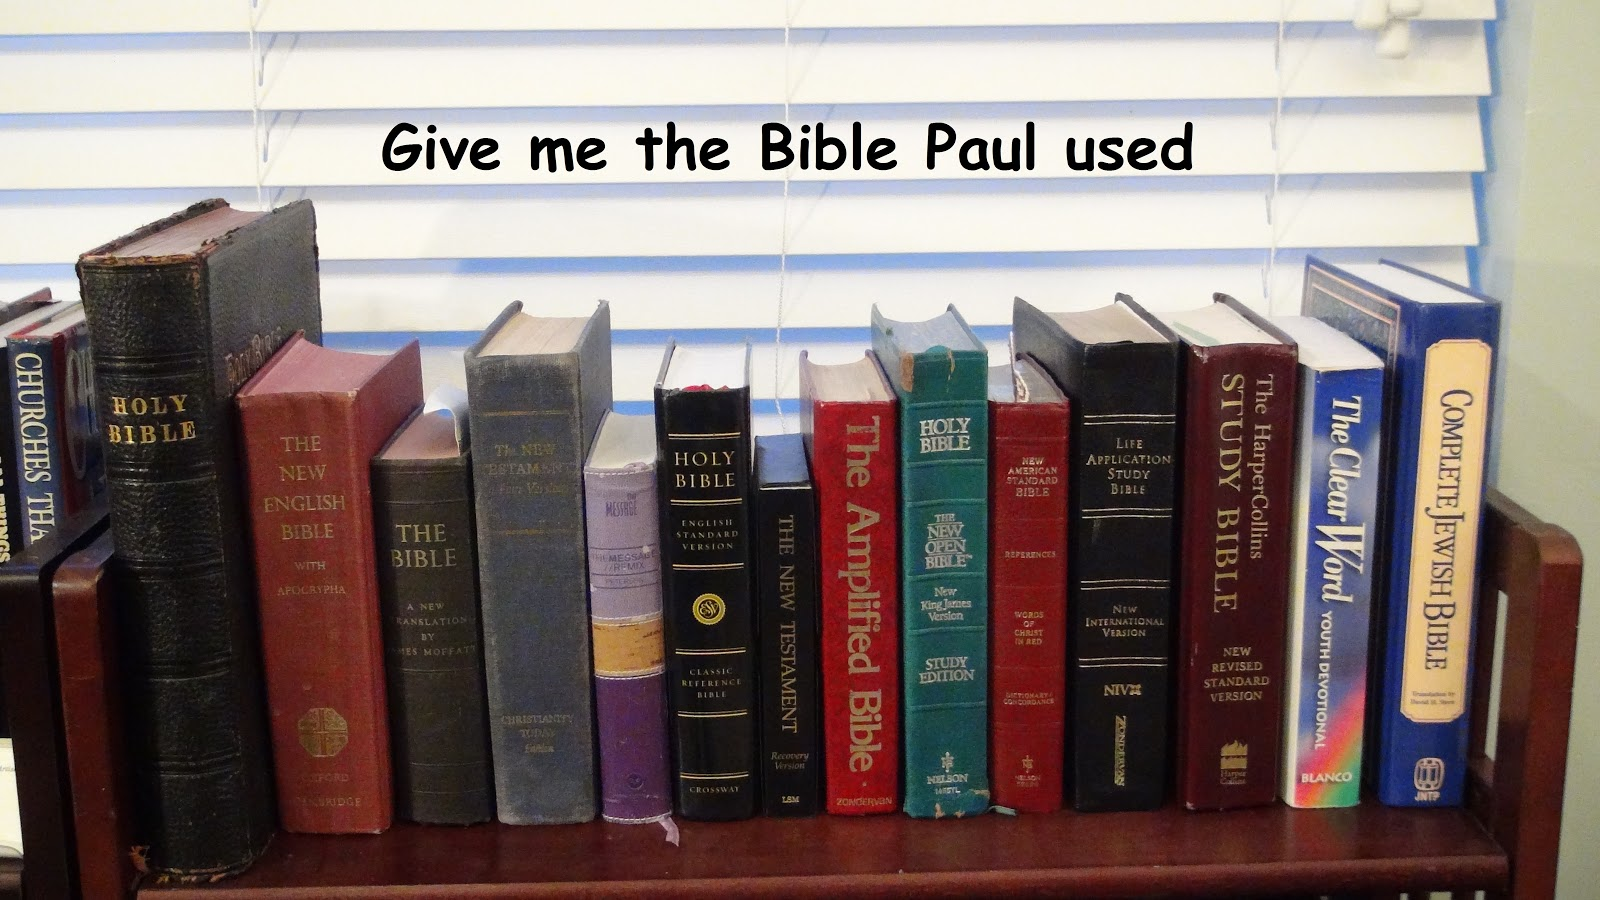 Apologetica: King James Bible only?